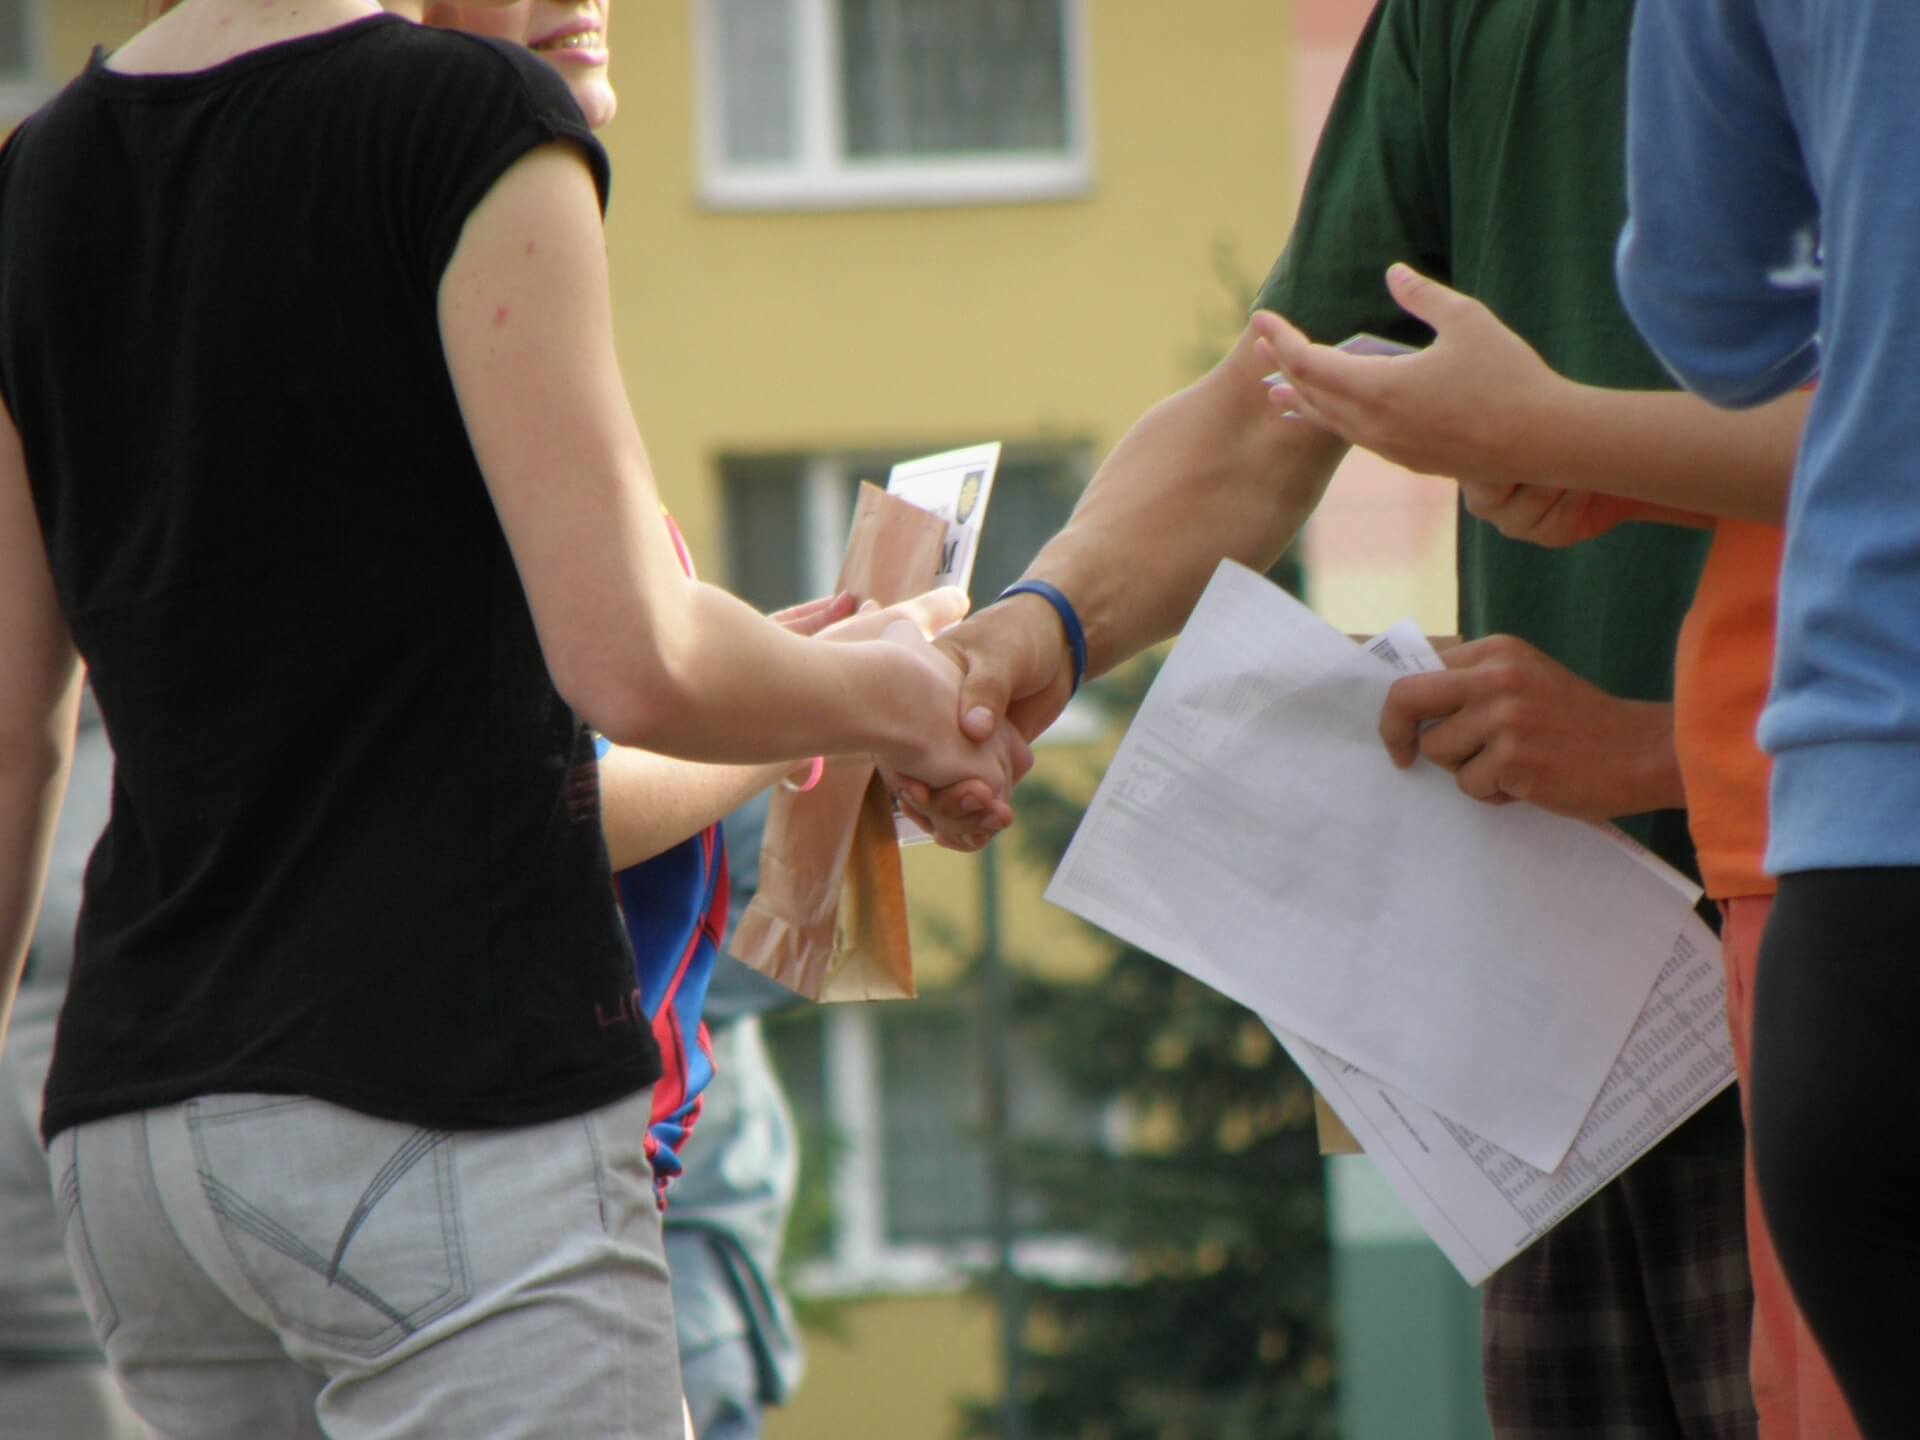 This image displays a handshake and portrays relevance to strategic communications for non-profit donations